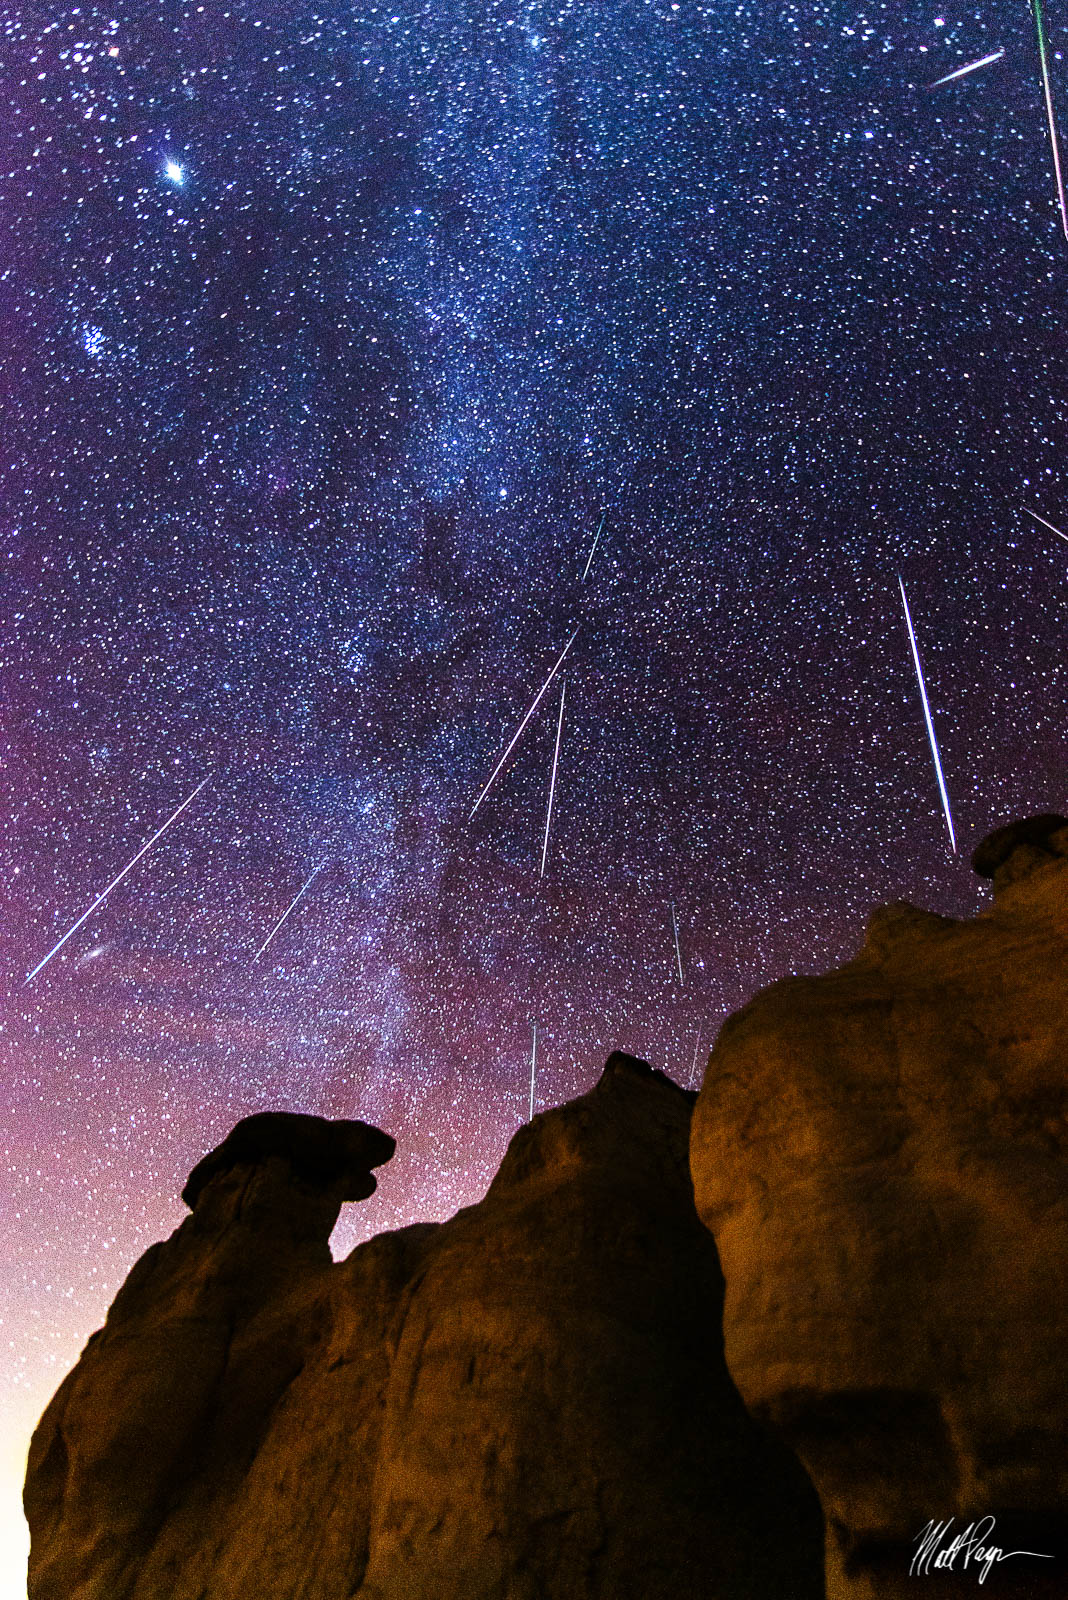 Colorado, Colorado Springs, Geminid Meteor Shower, Meteor, Milky Way, Night, Nightscape, Paint Mines, Calhan, Stars, Wonder, shooting star, photo